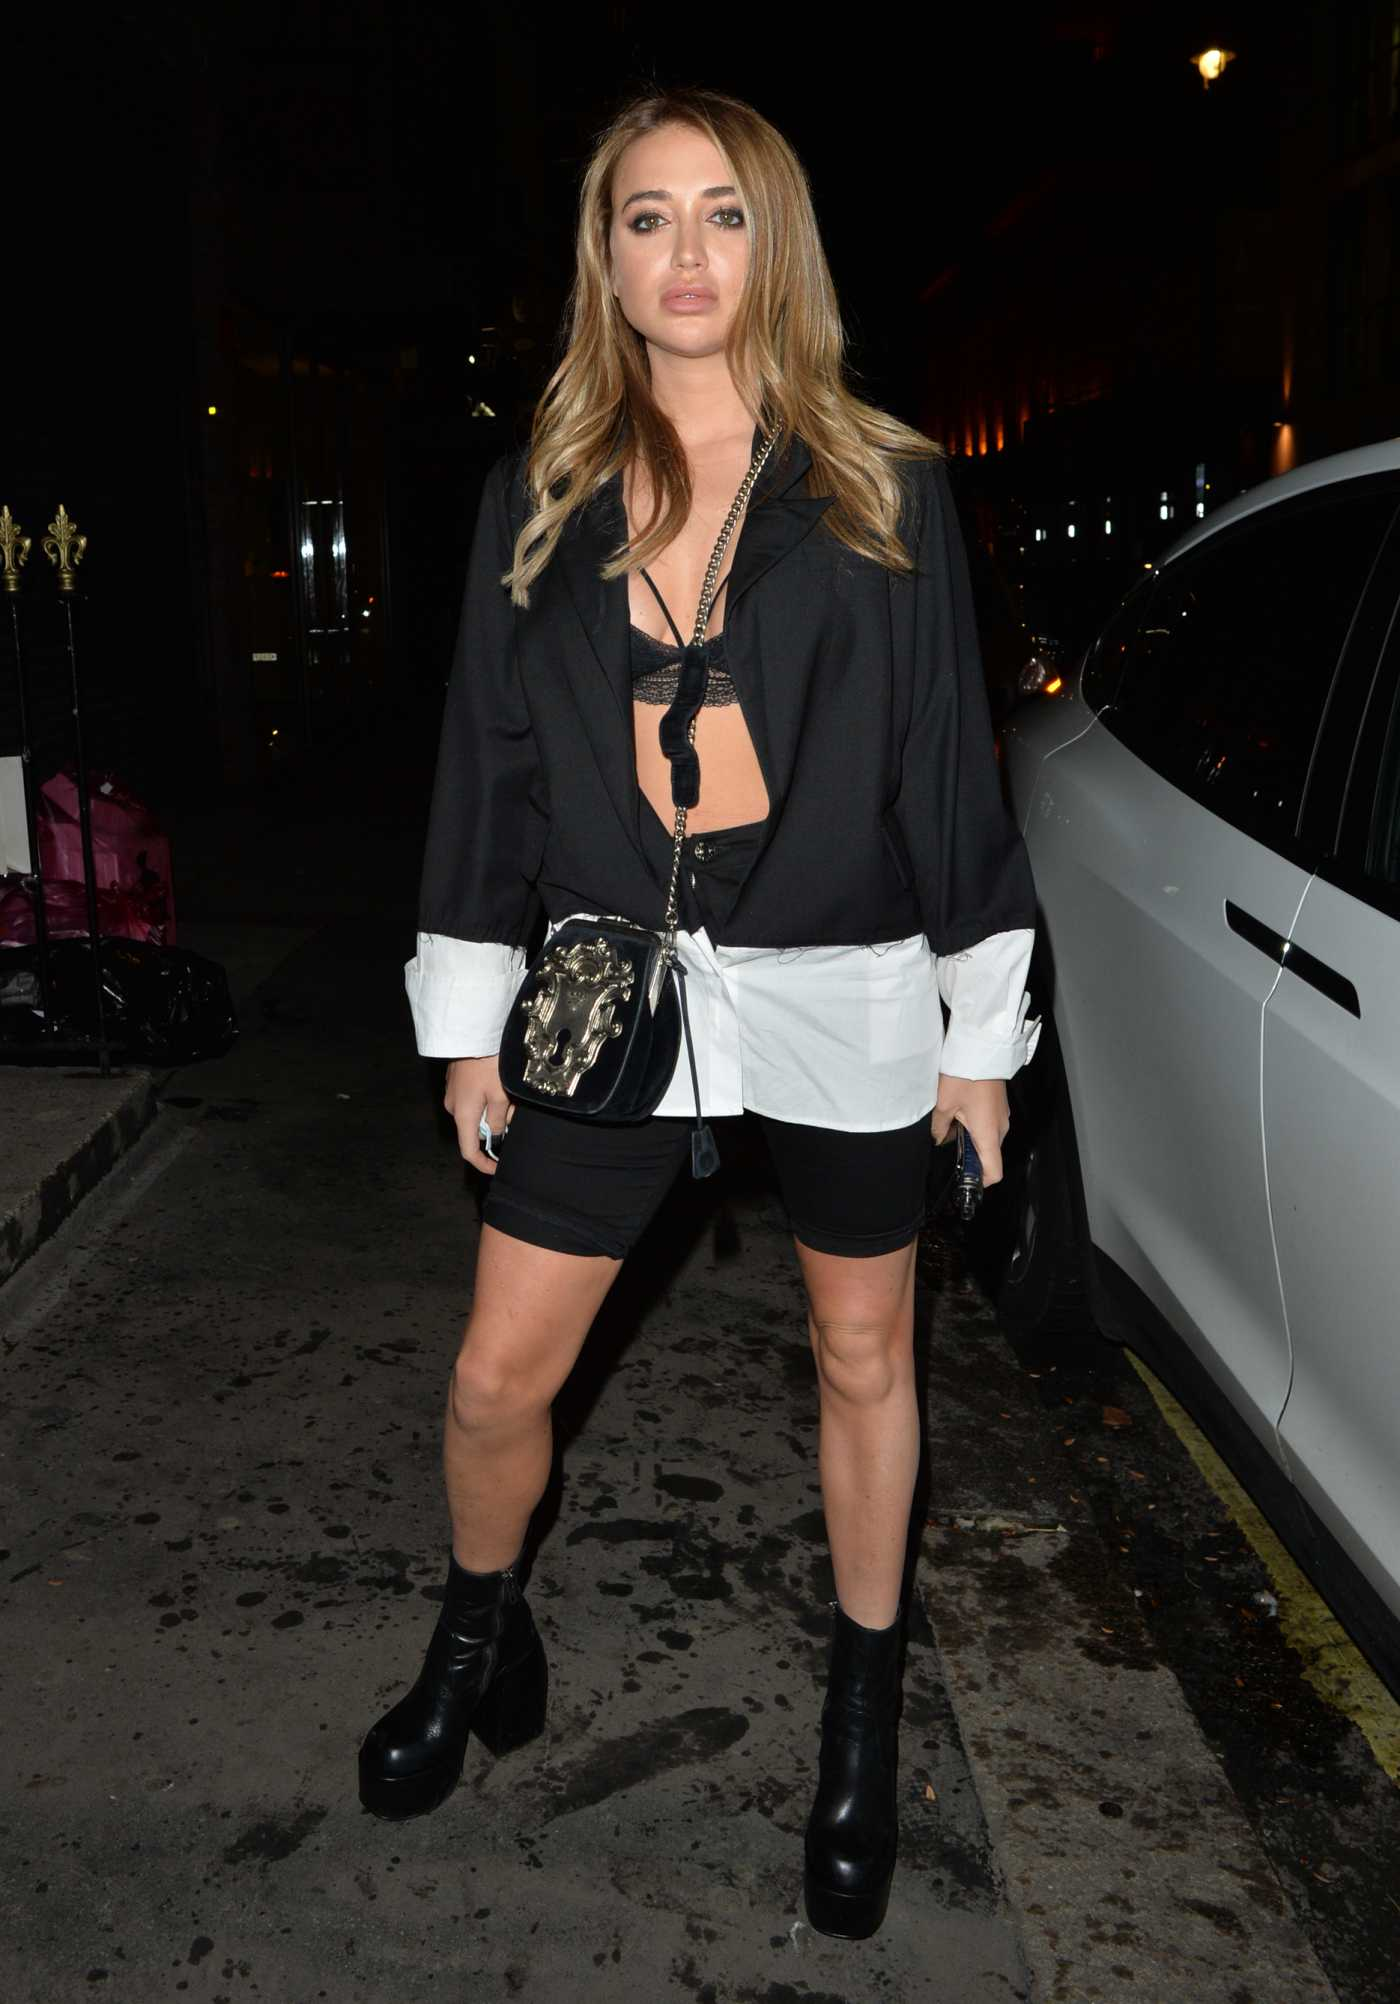 Georgia Harrison in a Black Spandex Shorts Arrives at MKNY House in Mayfair, London 10/23/2020